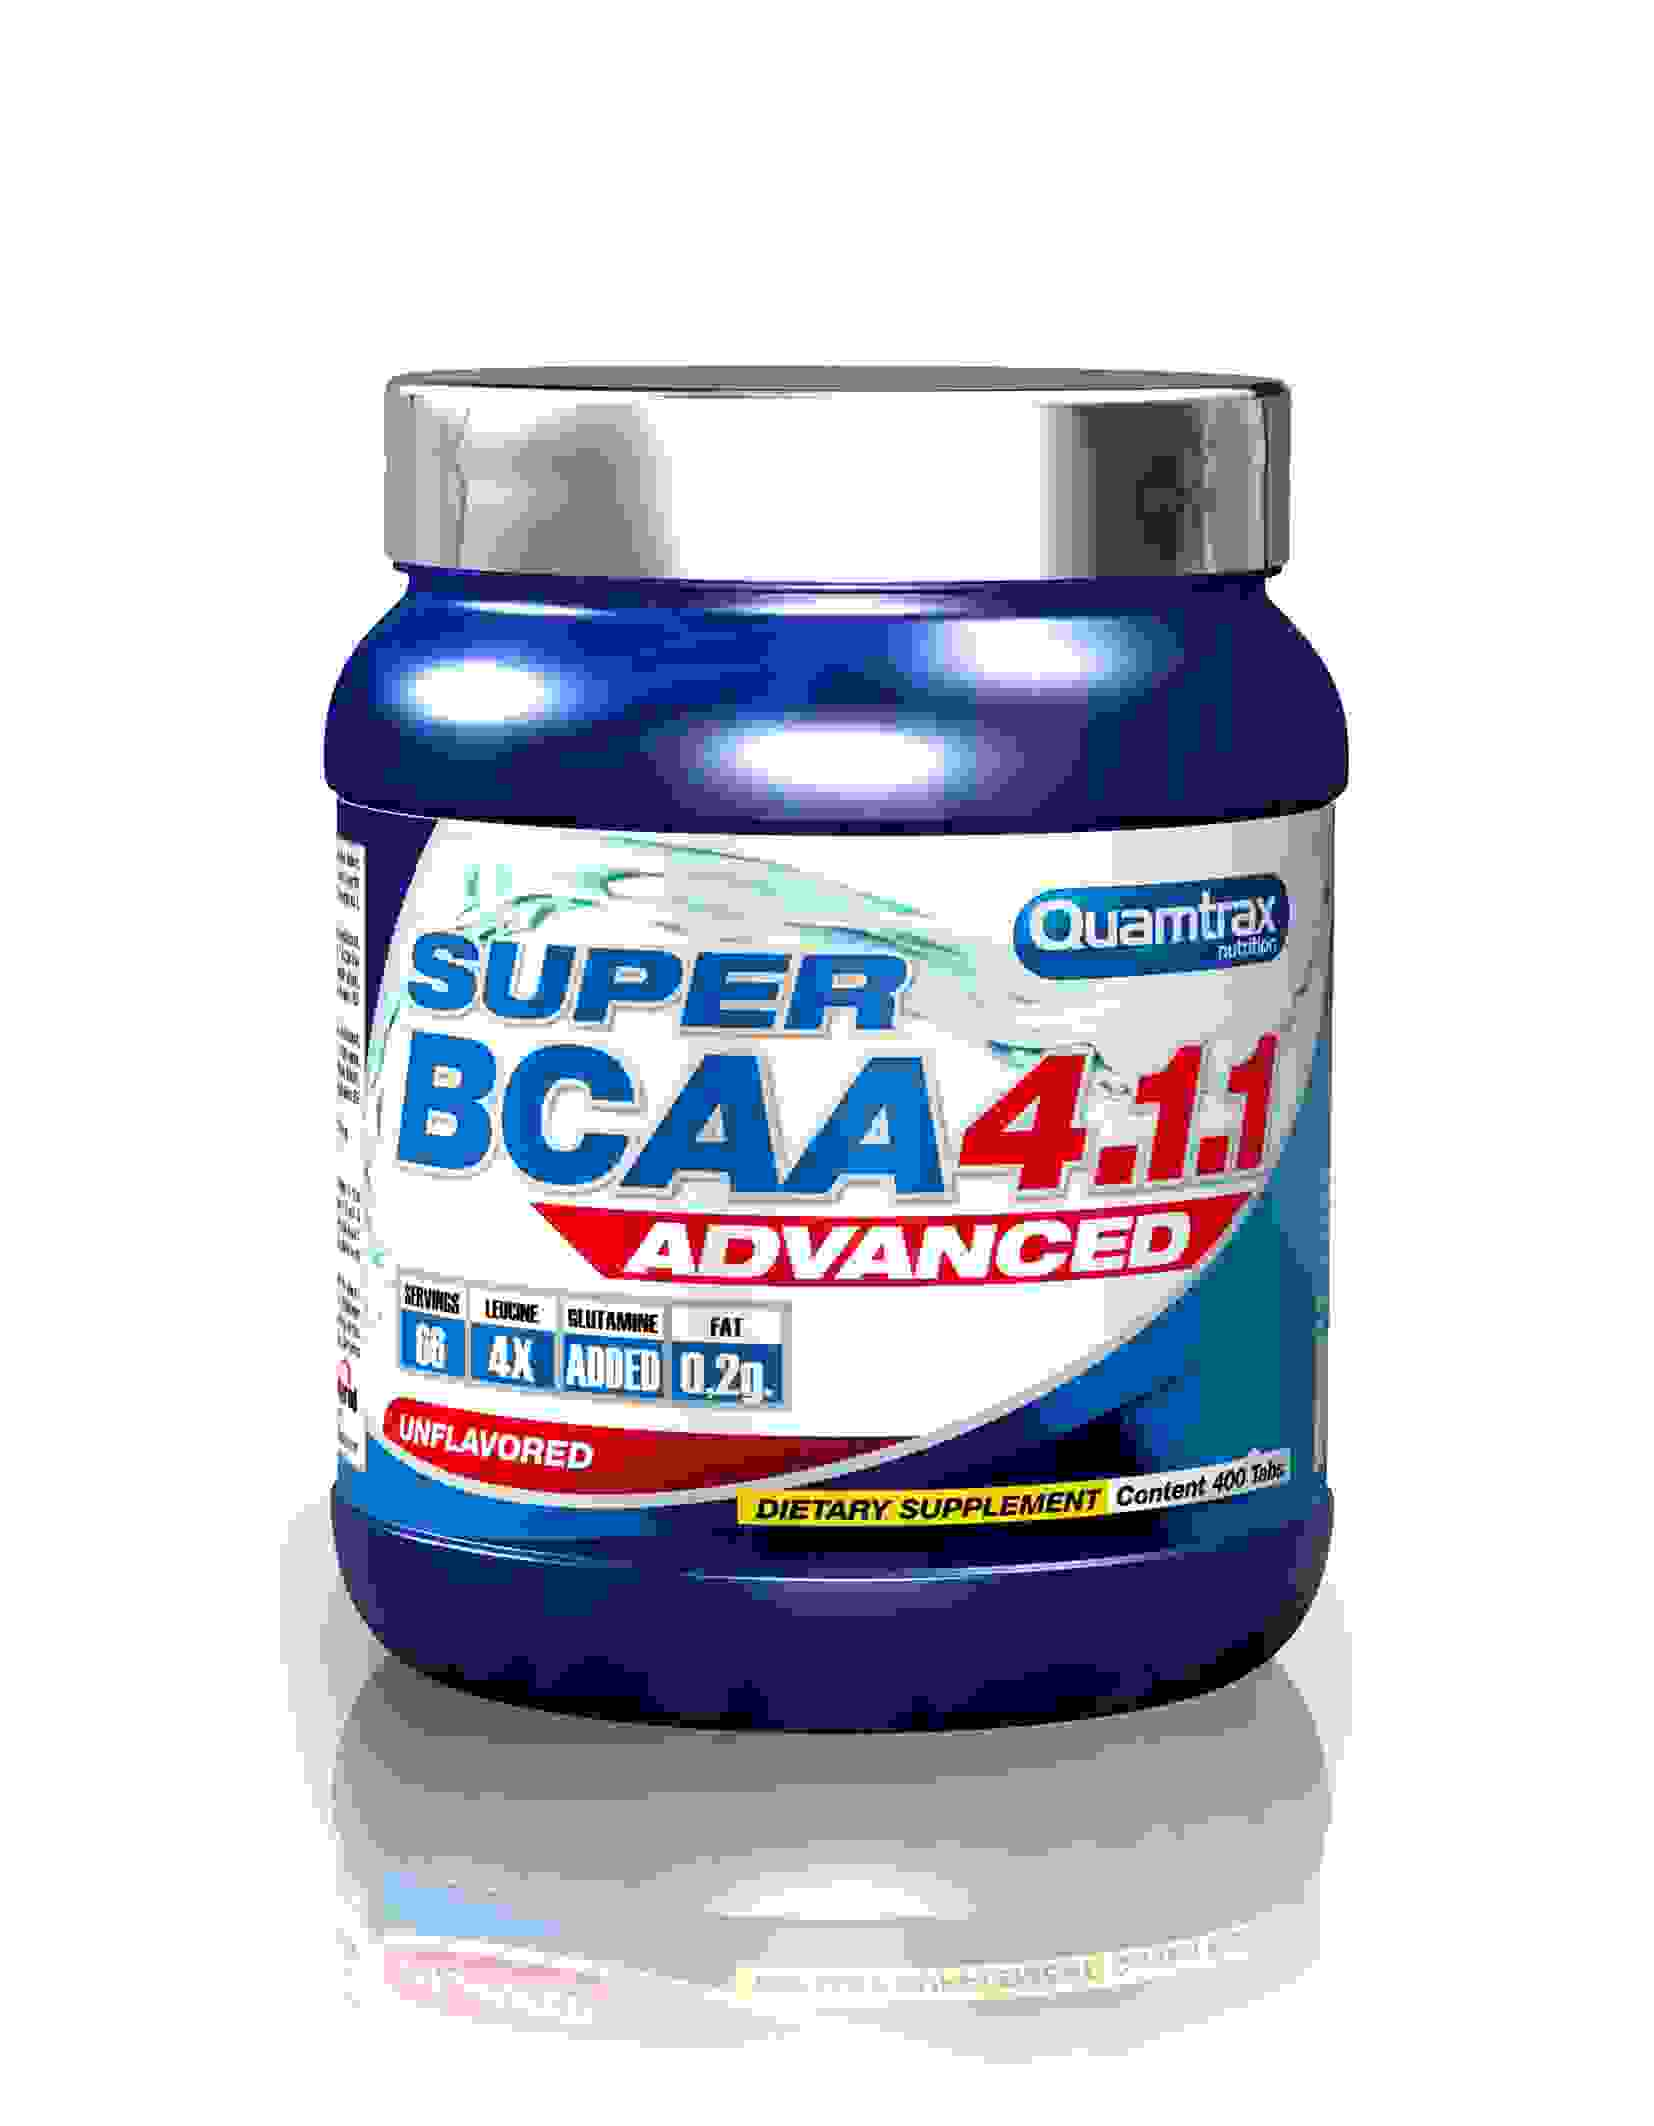 Quamtrax Super BCAA Advanced 4:1:1 200tablets